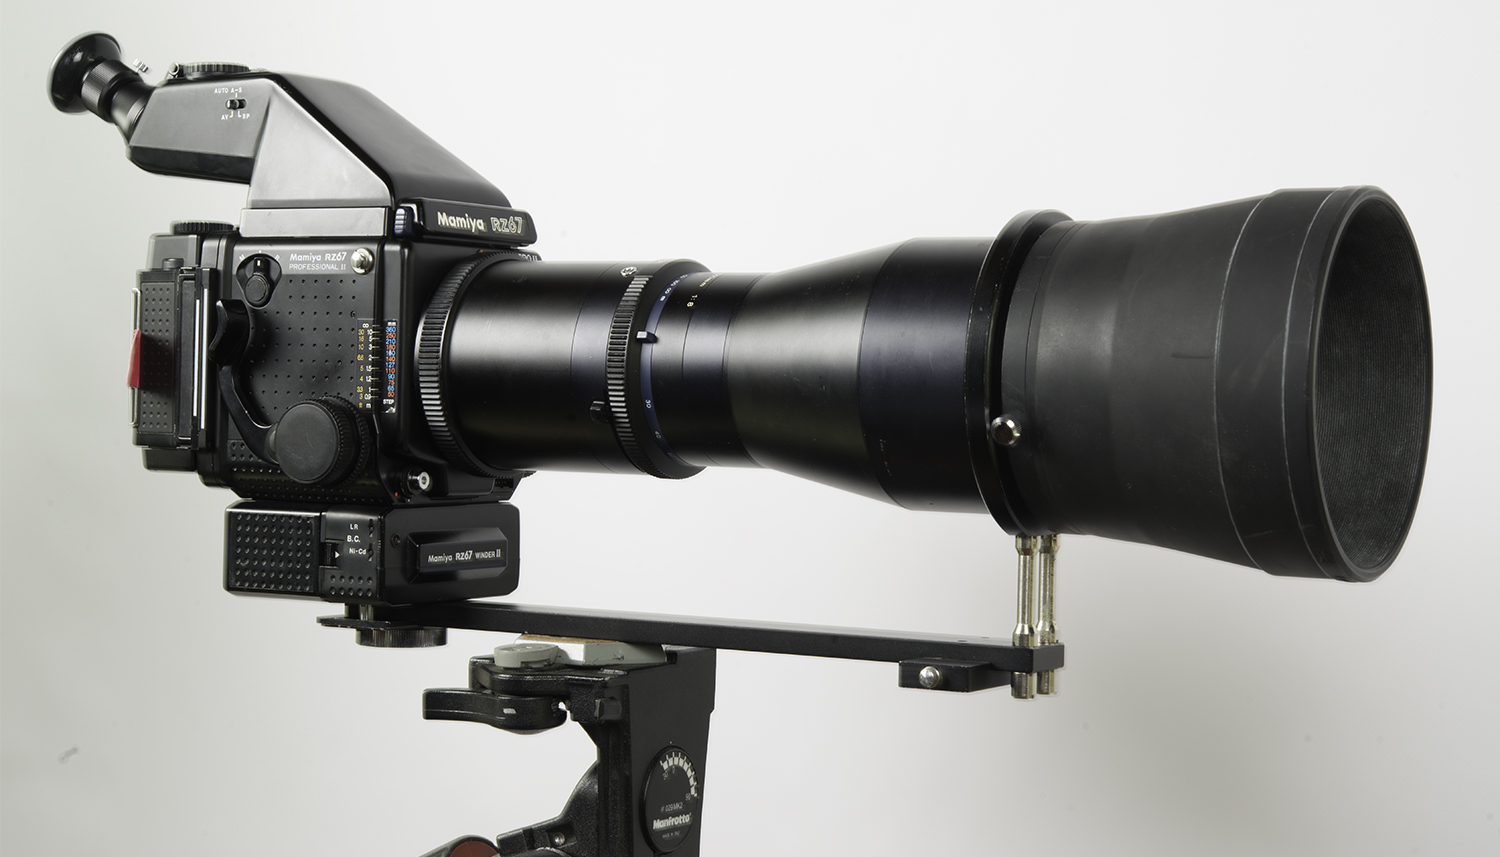 Mamiya Z 500mm lens and support bracket in use